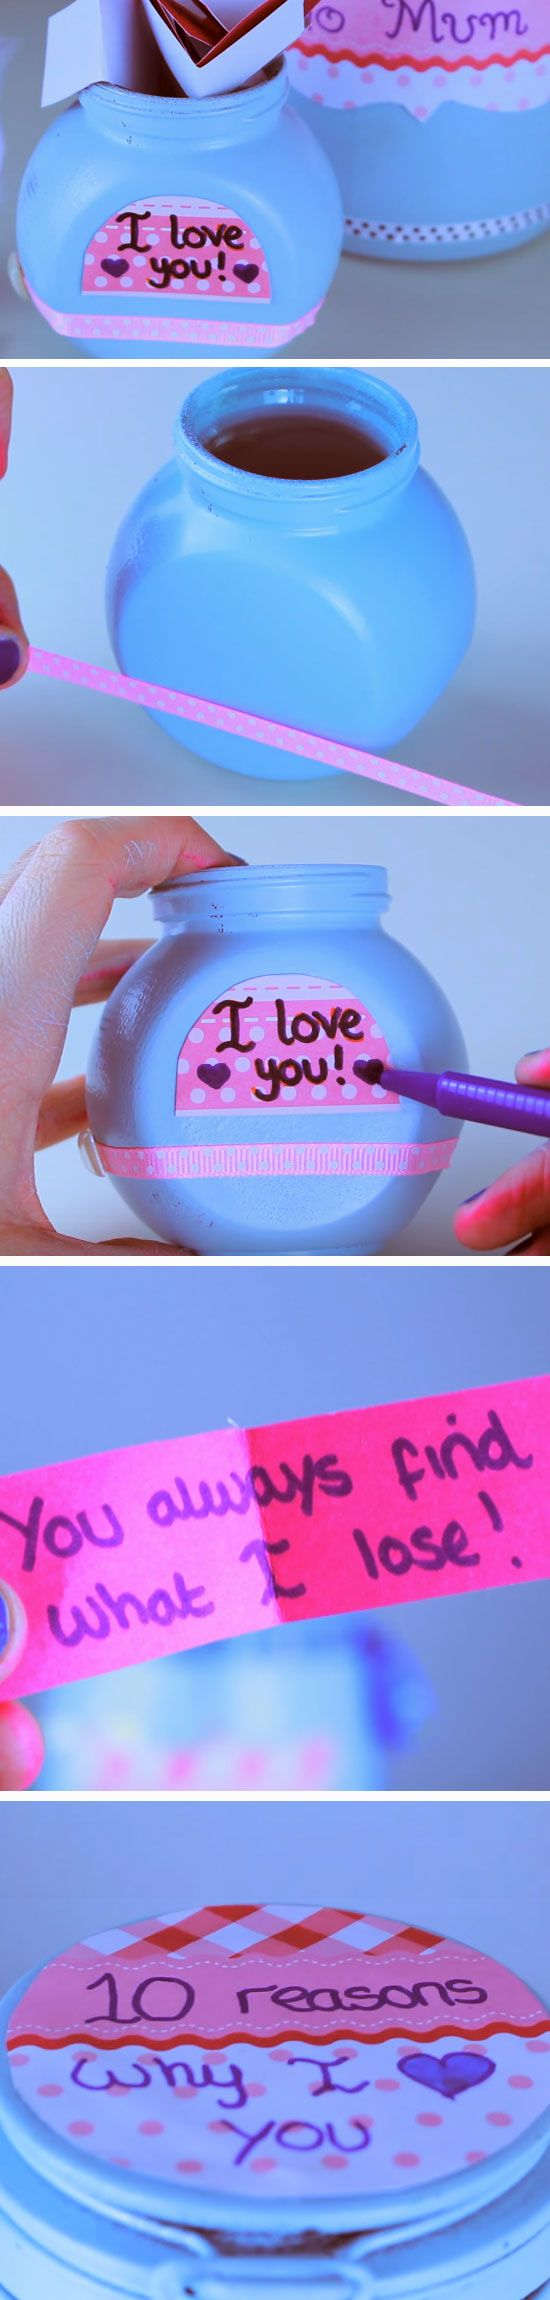 Jar of Love | DIY Mothers Day Gift Ideas from Daughter | Handmade Birthday Gifts for Grandma